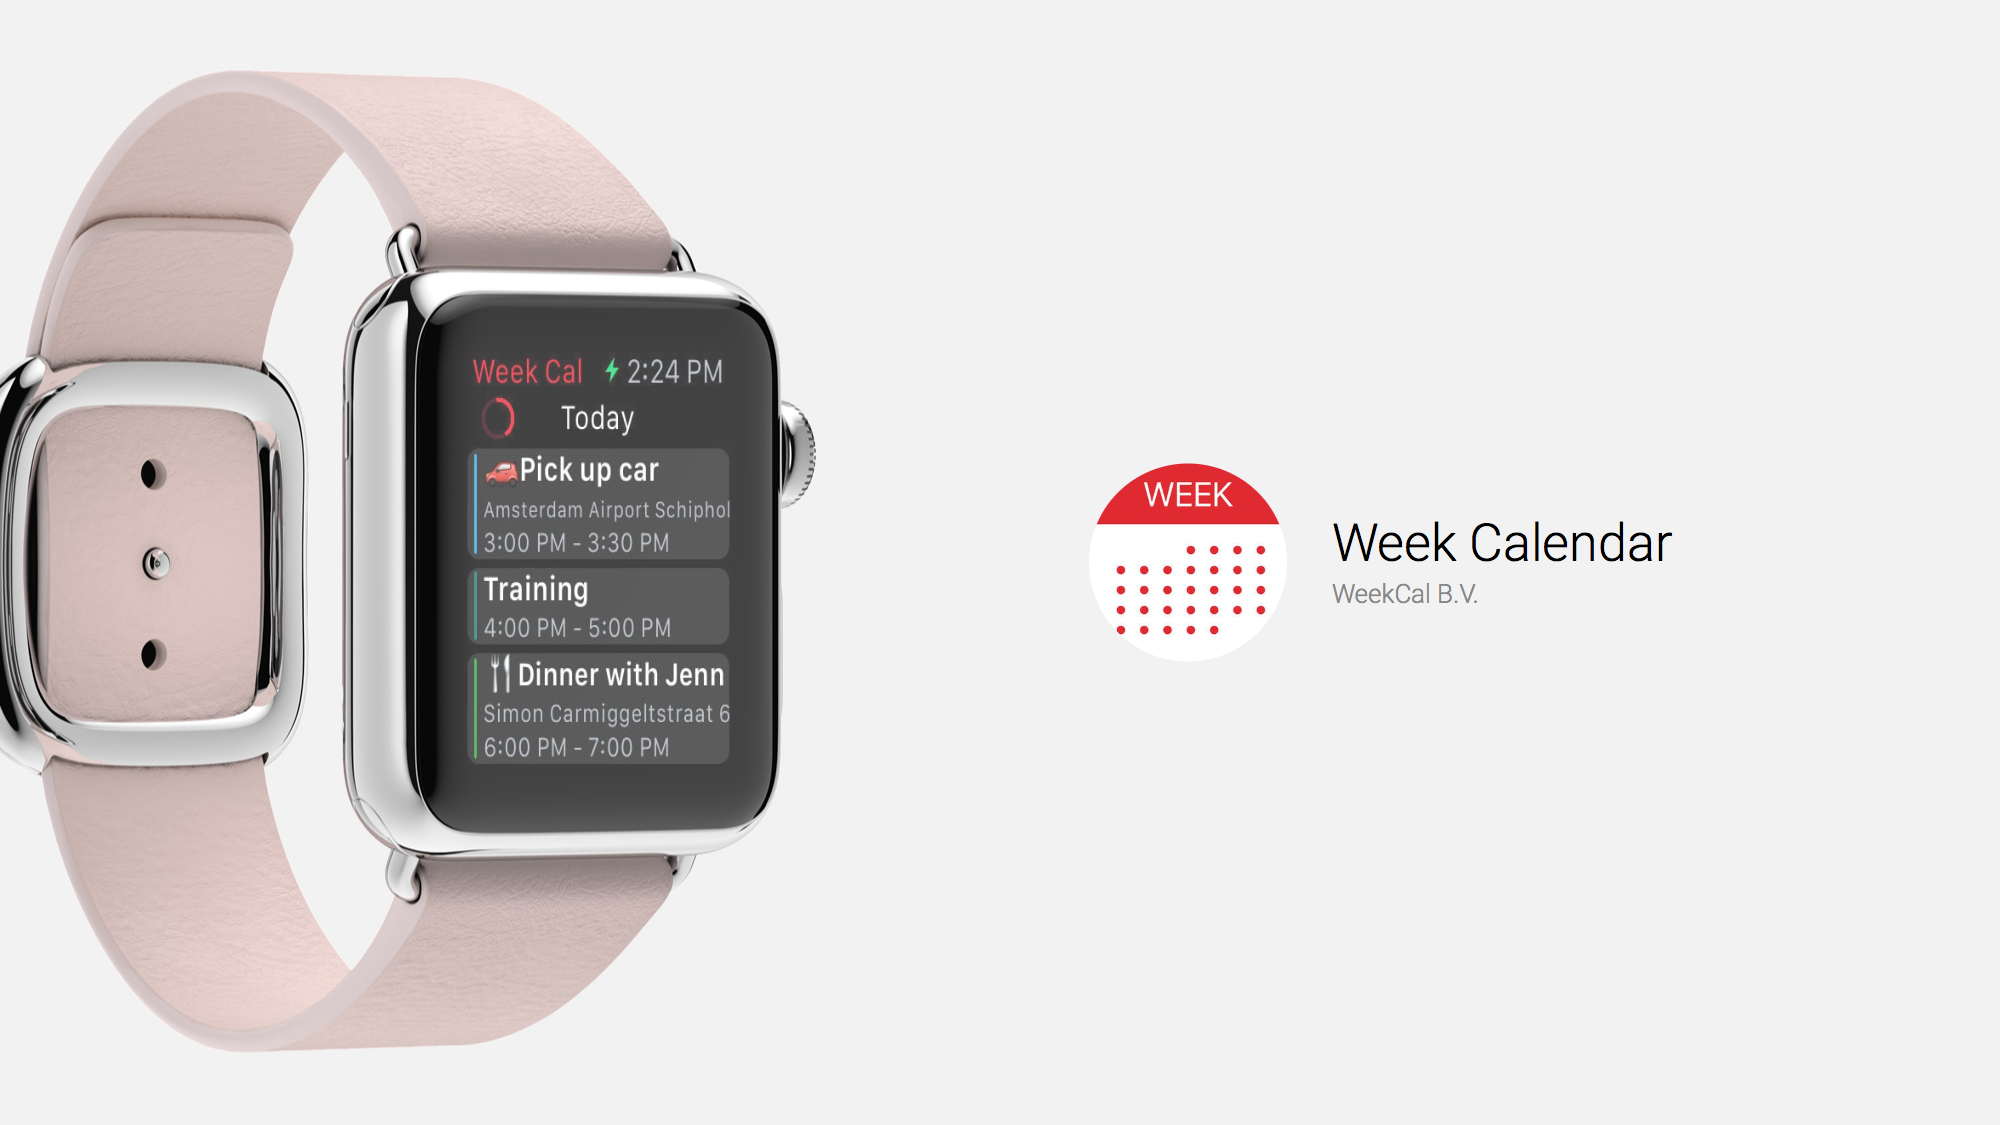 Week Calendar Offers More Features Than Stock Calendar App